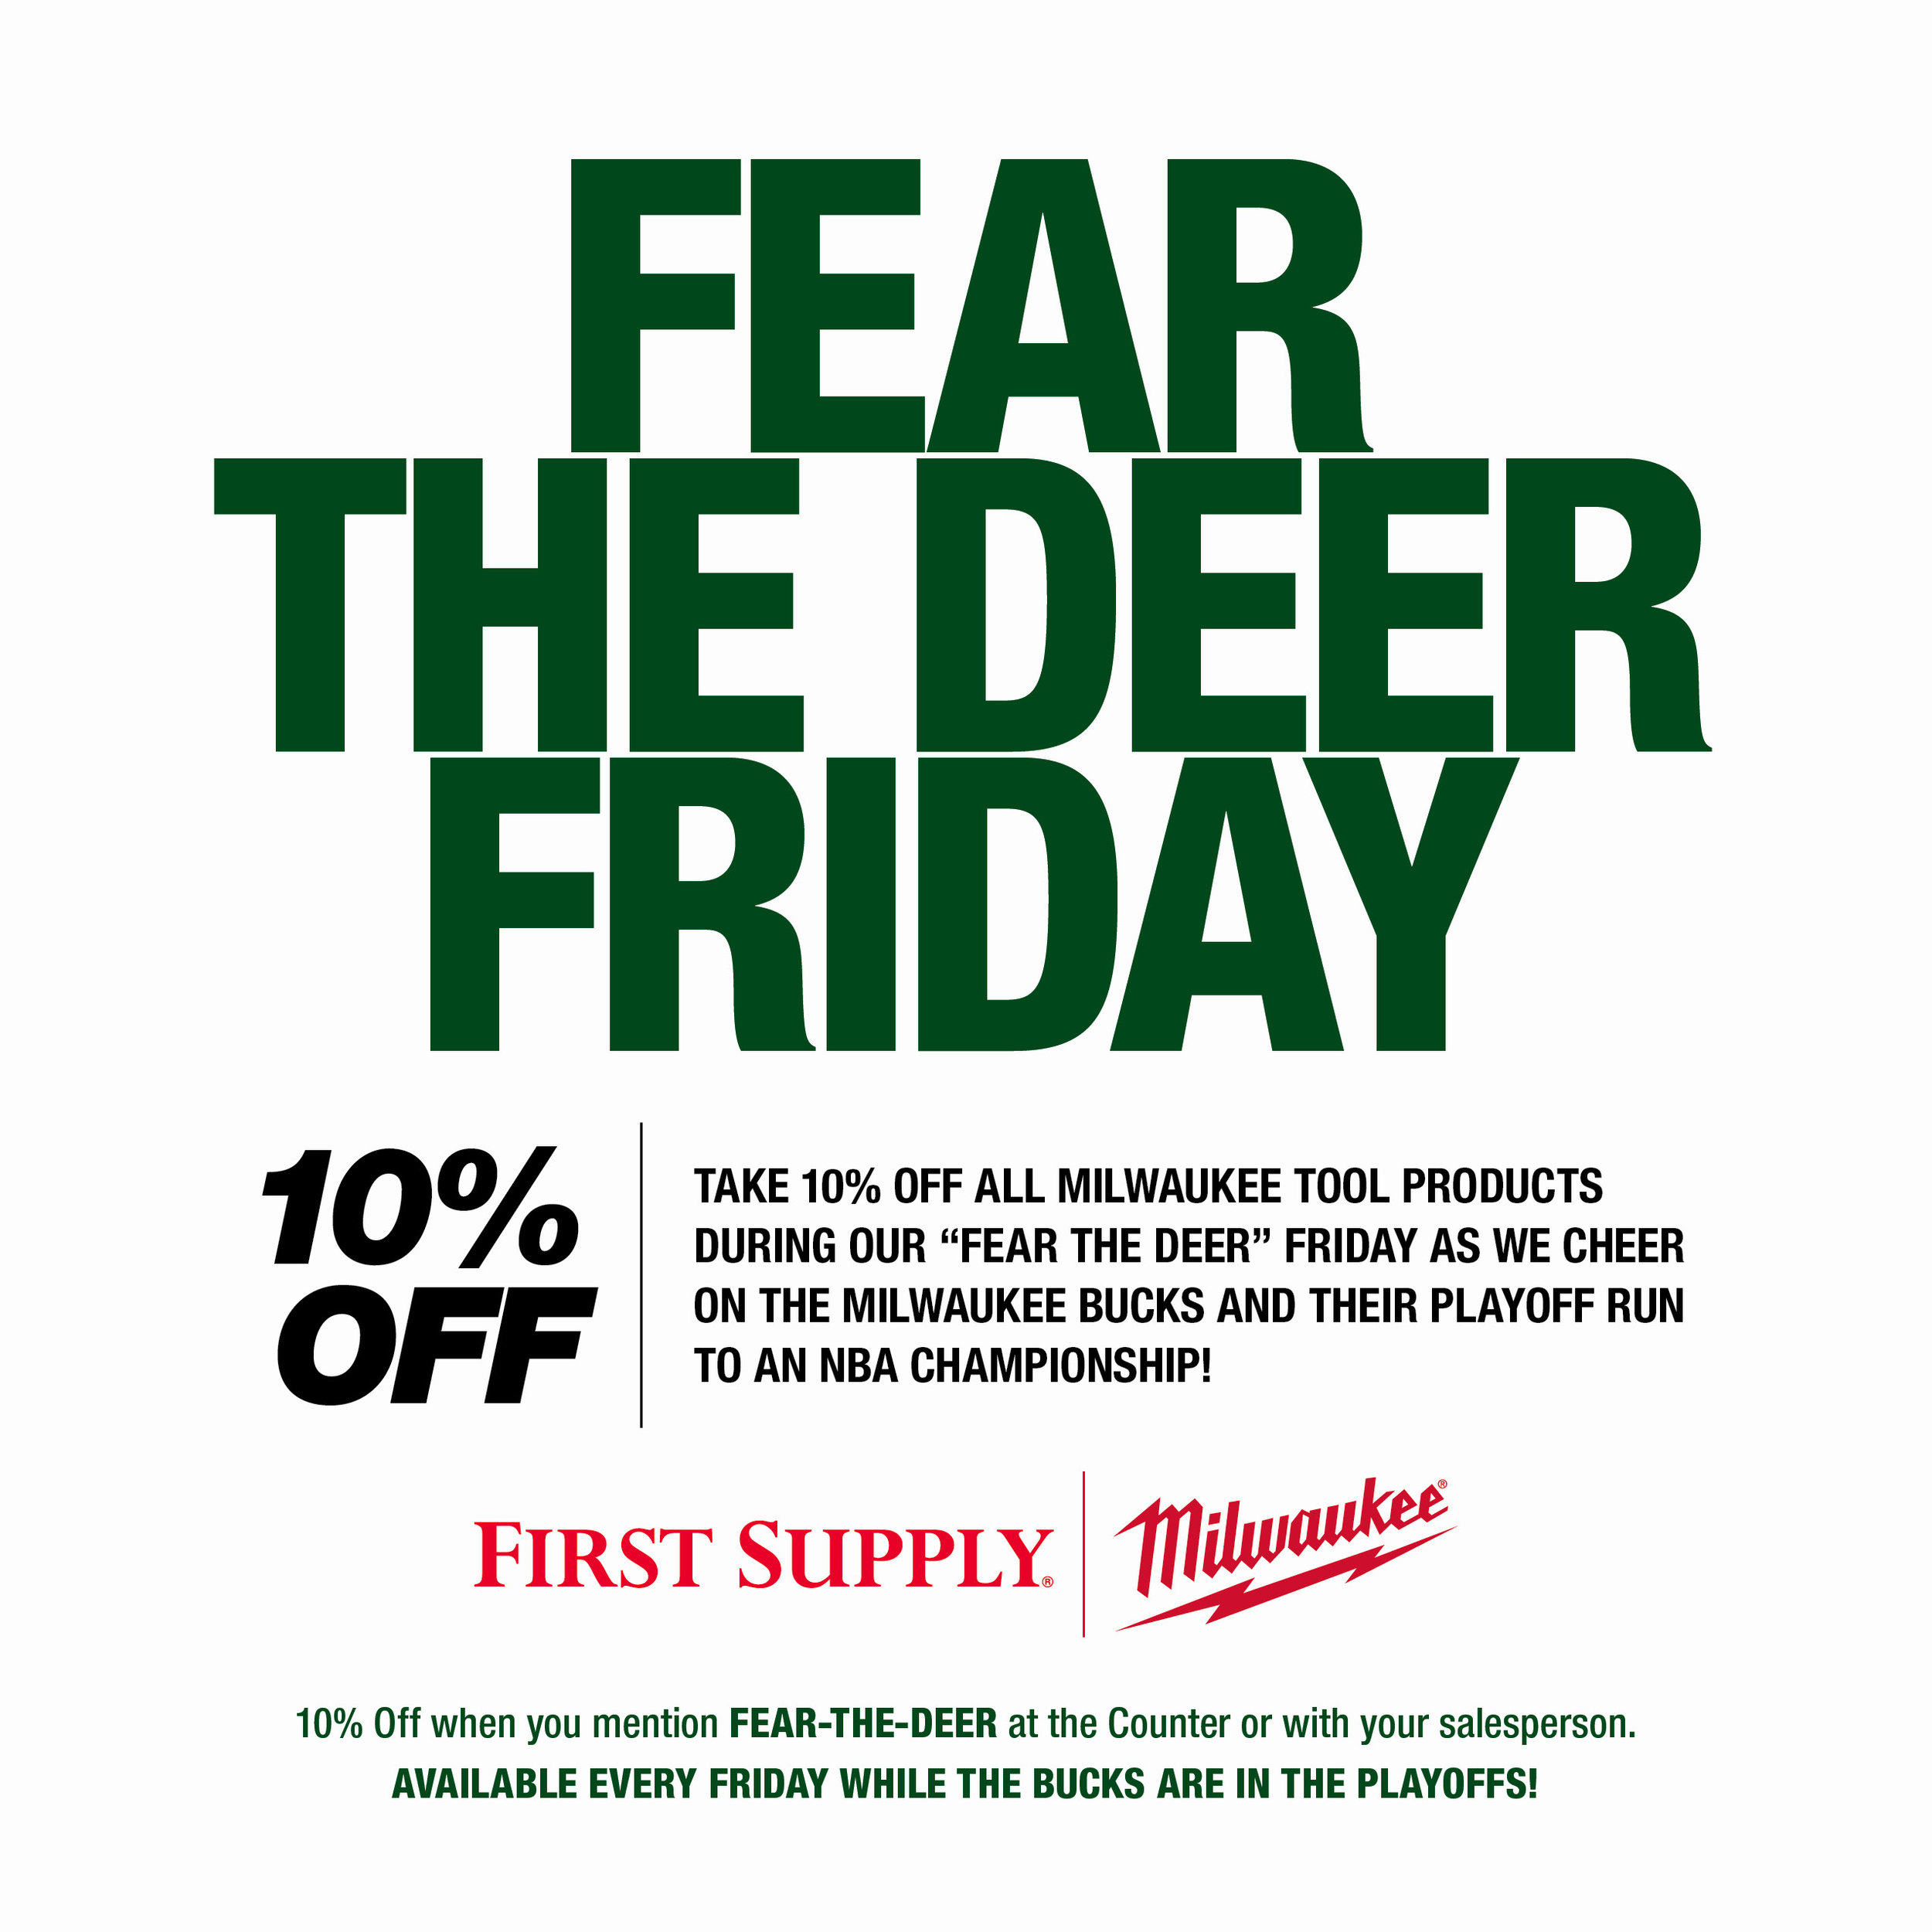 FIrst-Supply-Fear-the-Deer-Friday-01.jpg